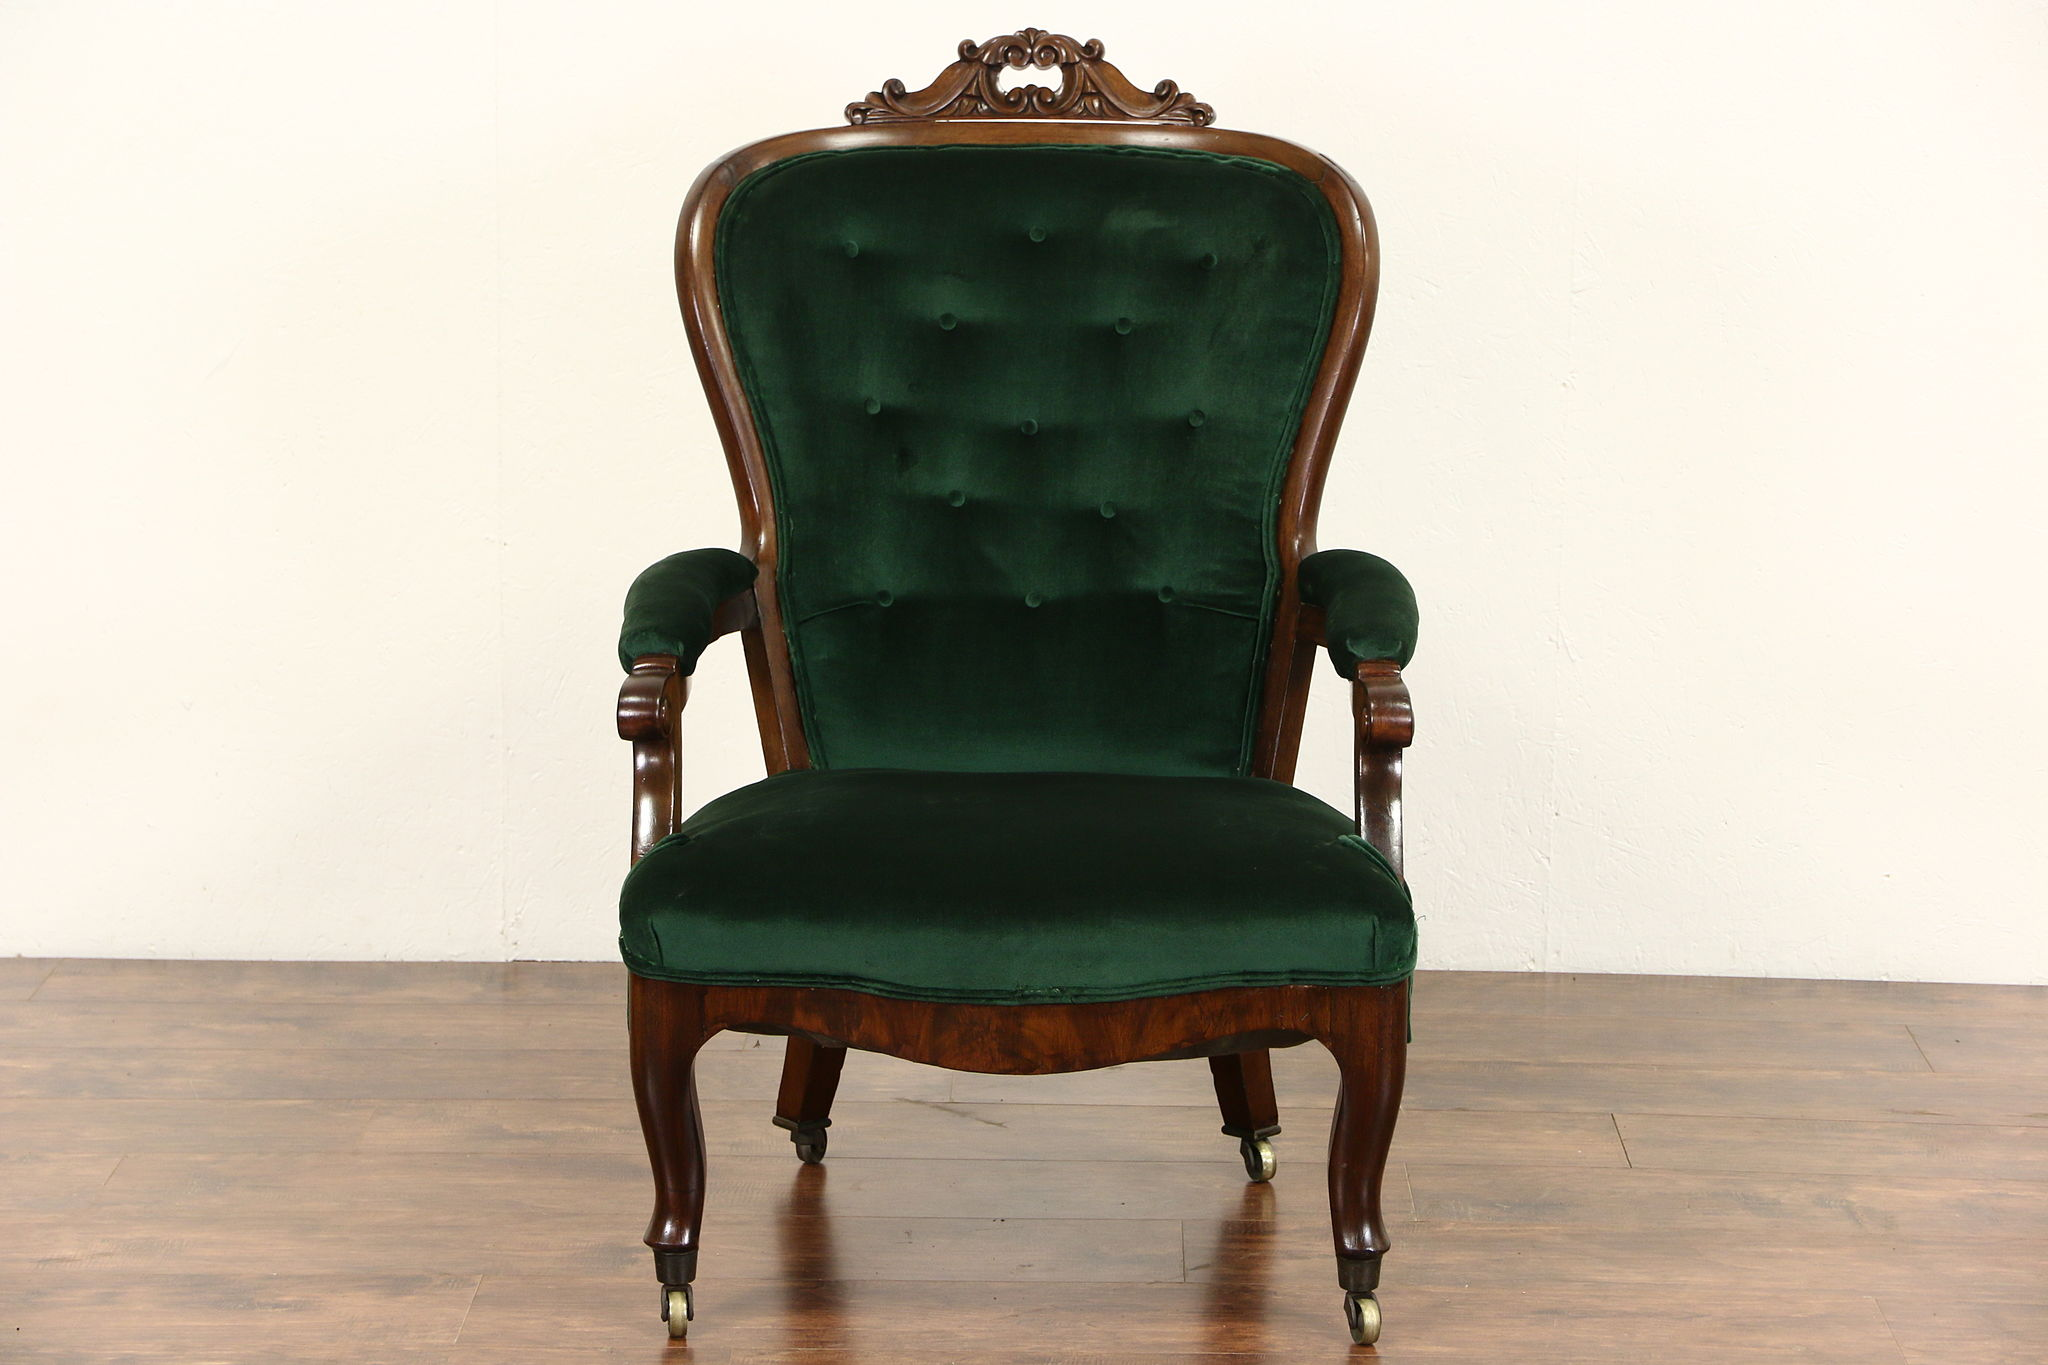 SOLD Victorian 1860 Antique Carved Walnut Gents Chair w